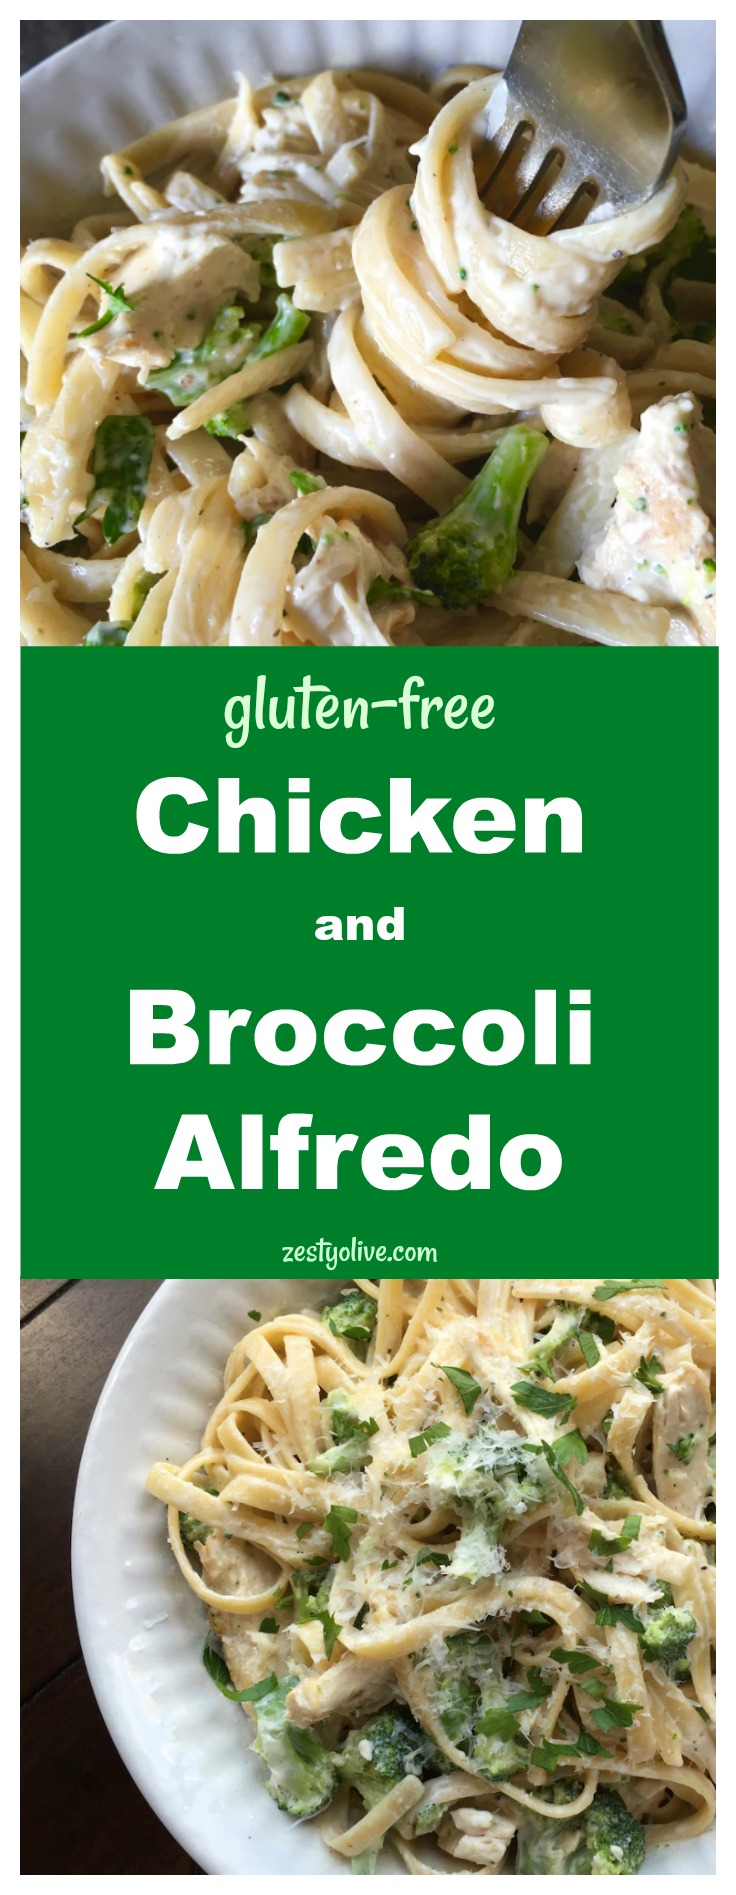 Gluten-Free Chicken Broccoli Alfredo